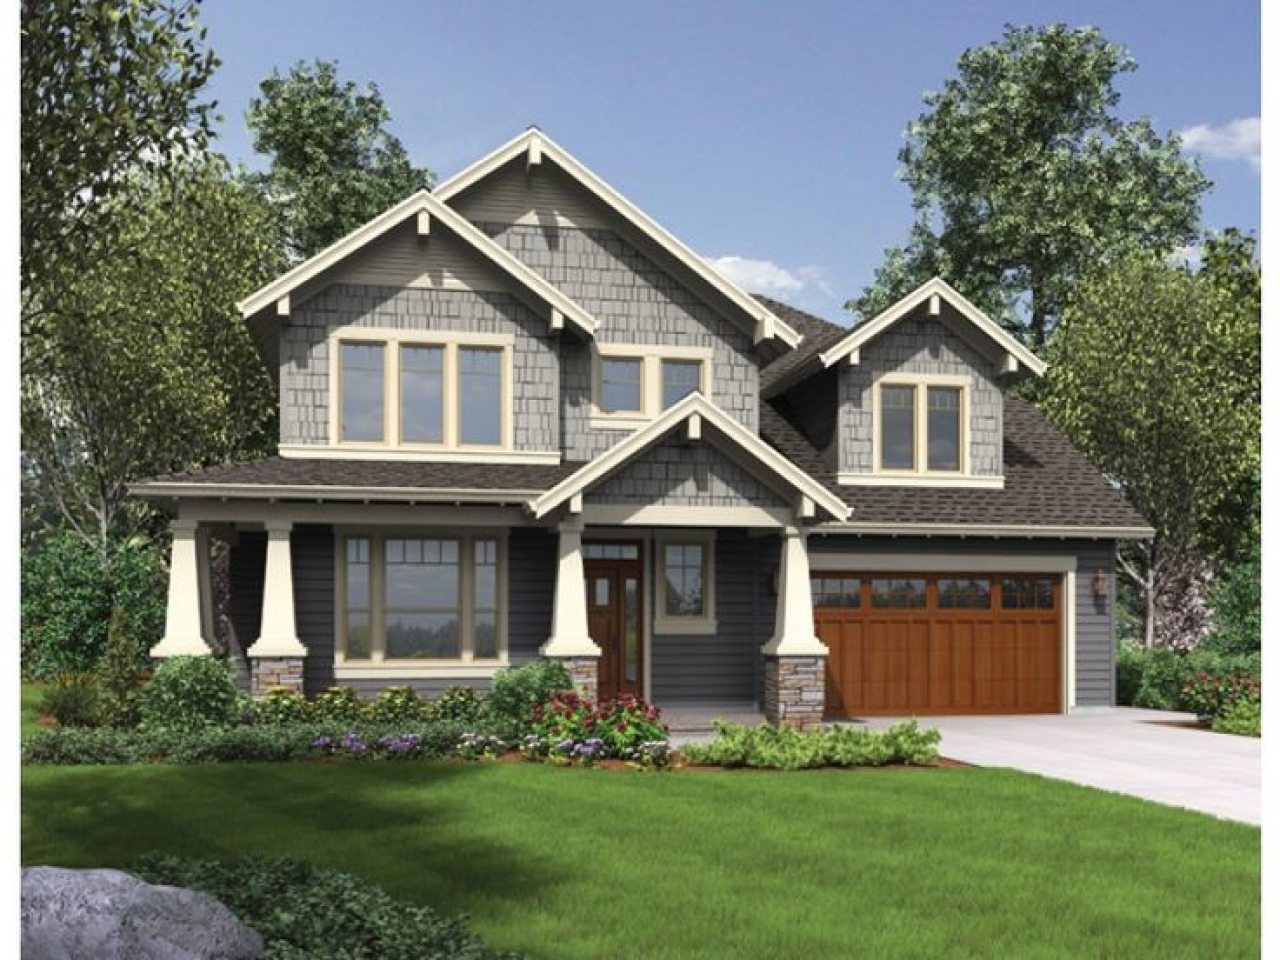 3 bedroom house designs 3 bedroom craftsman house plans for 3 story craftsman house plans